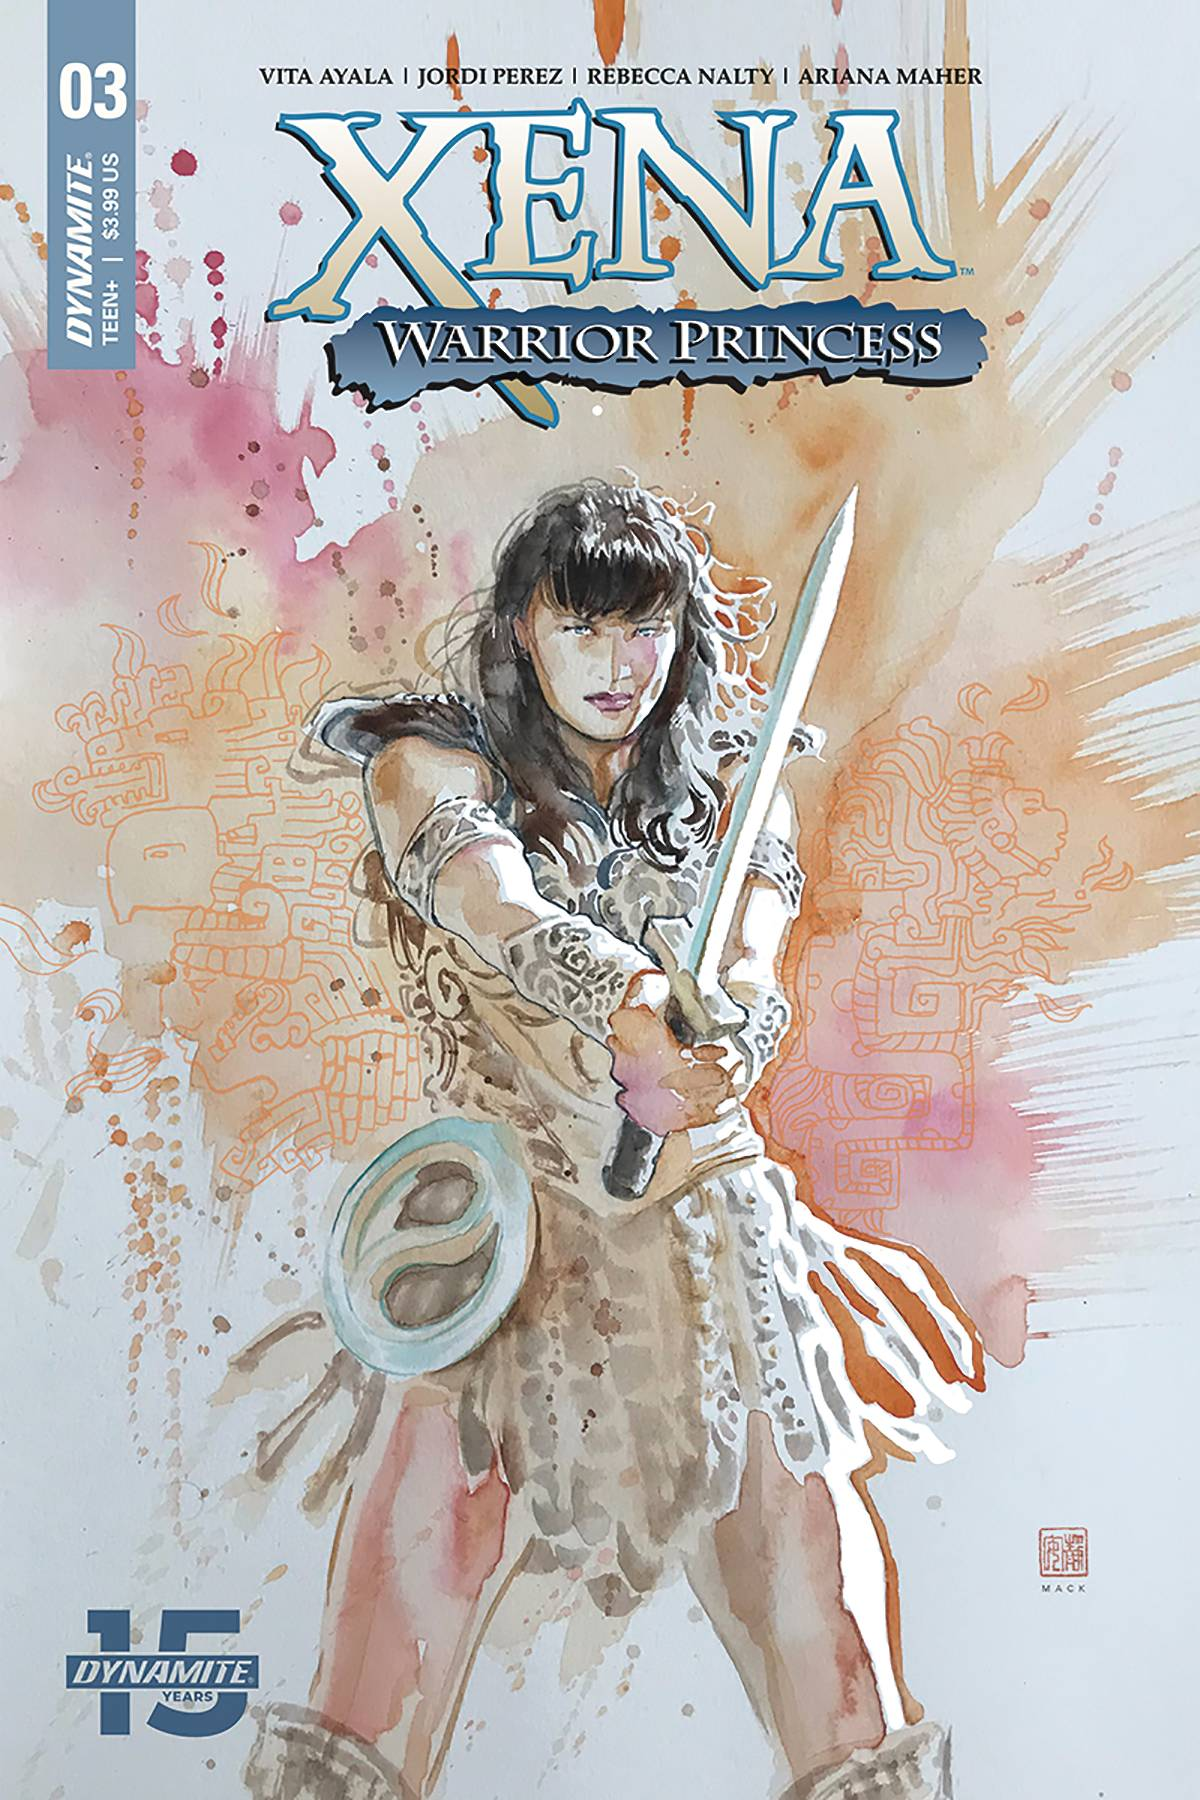 XENA WARRIOR PRINCESS 3 CVR A MACK.jpg